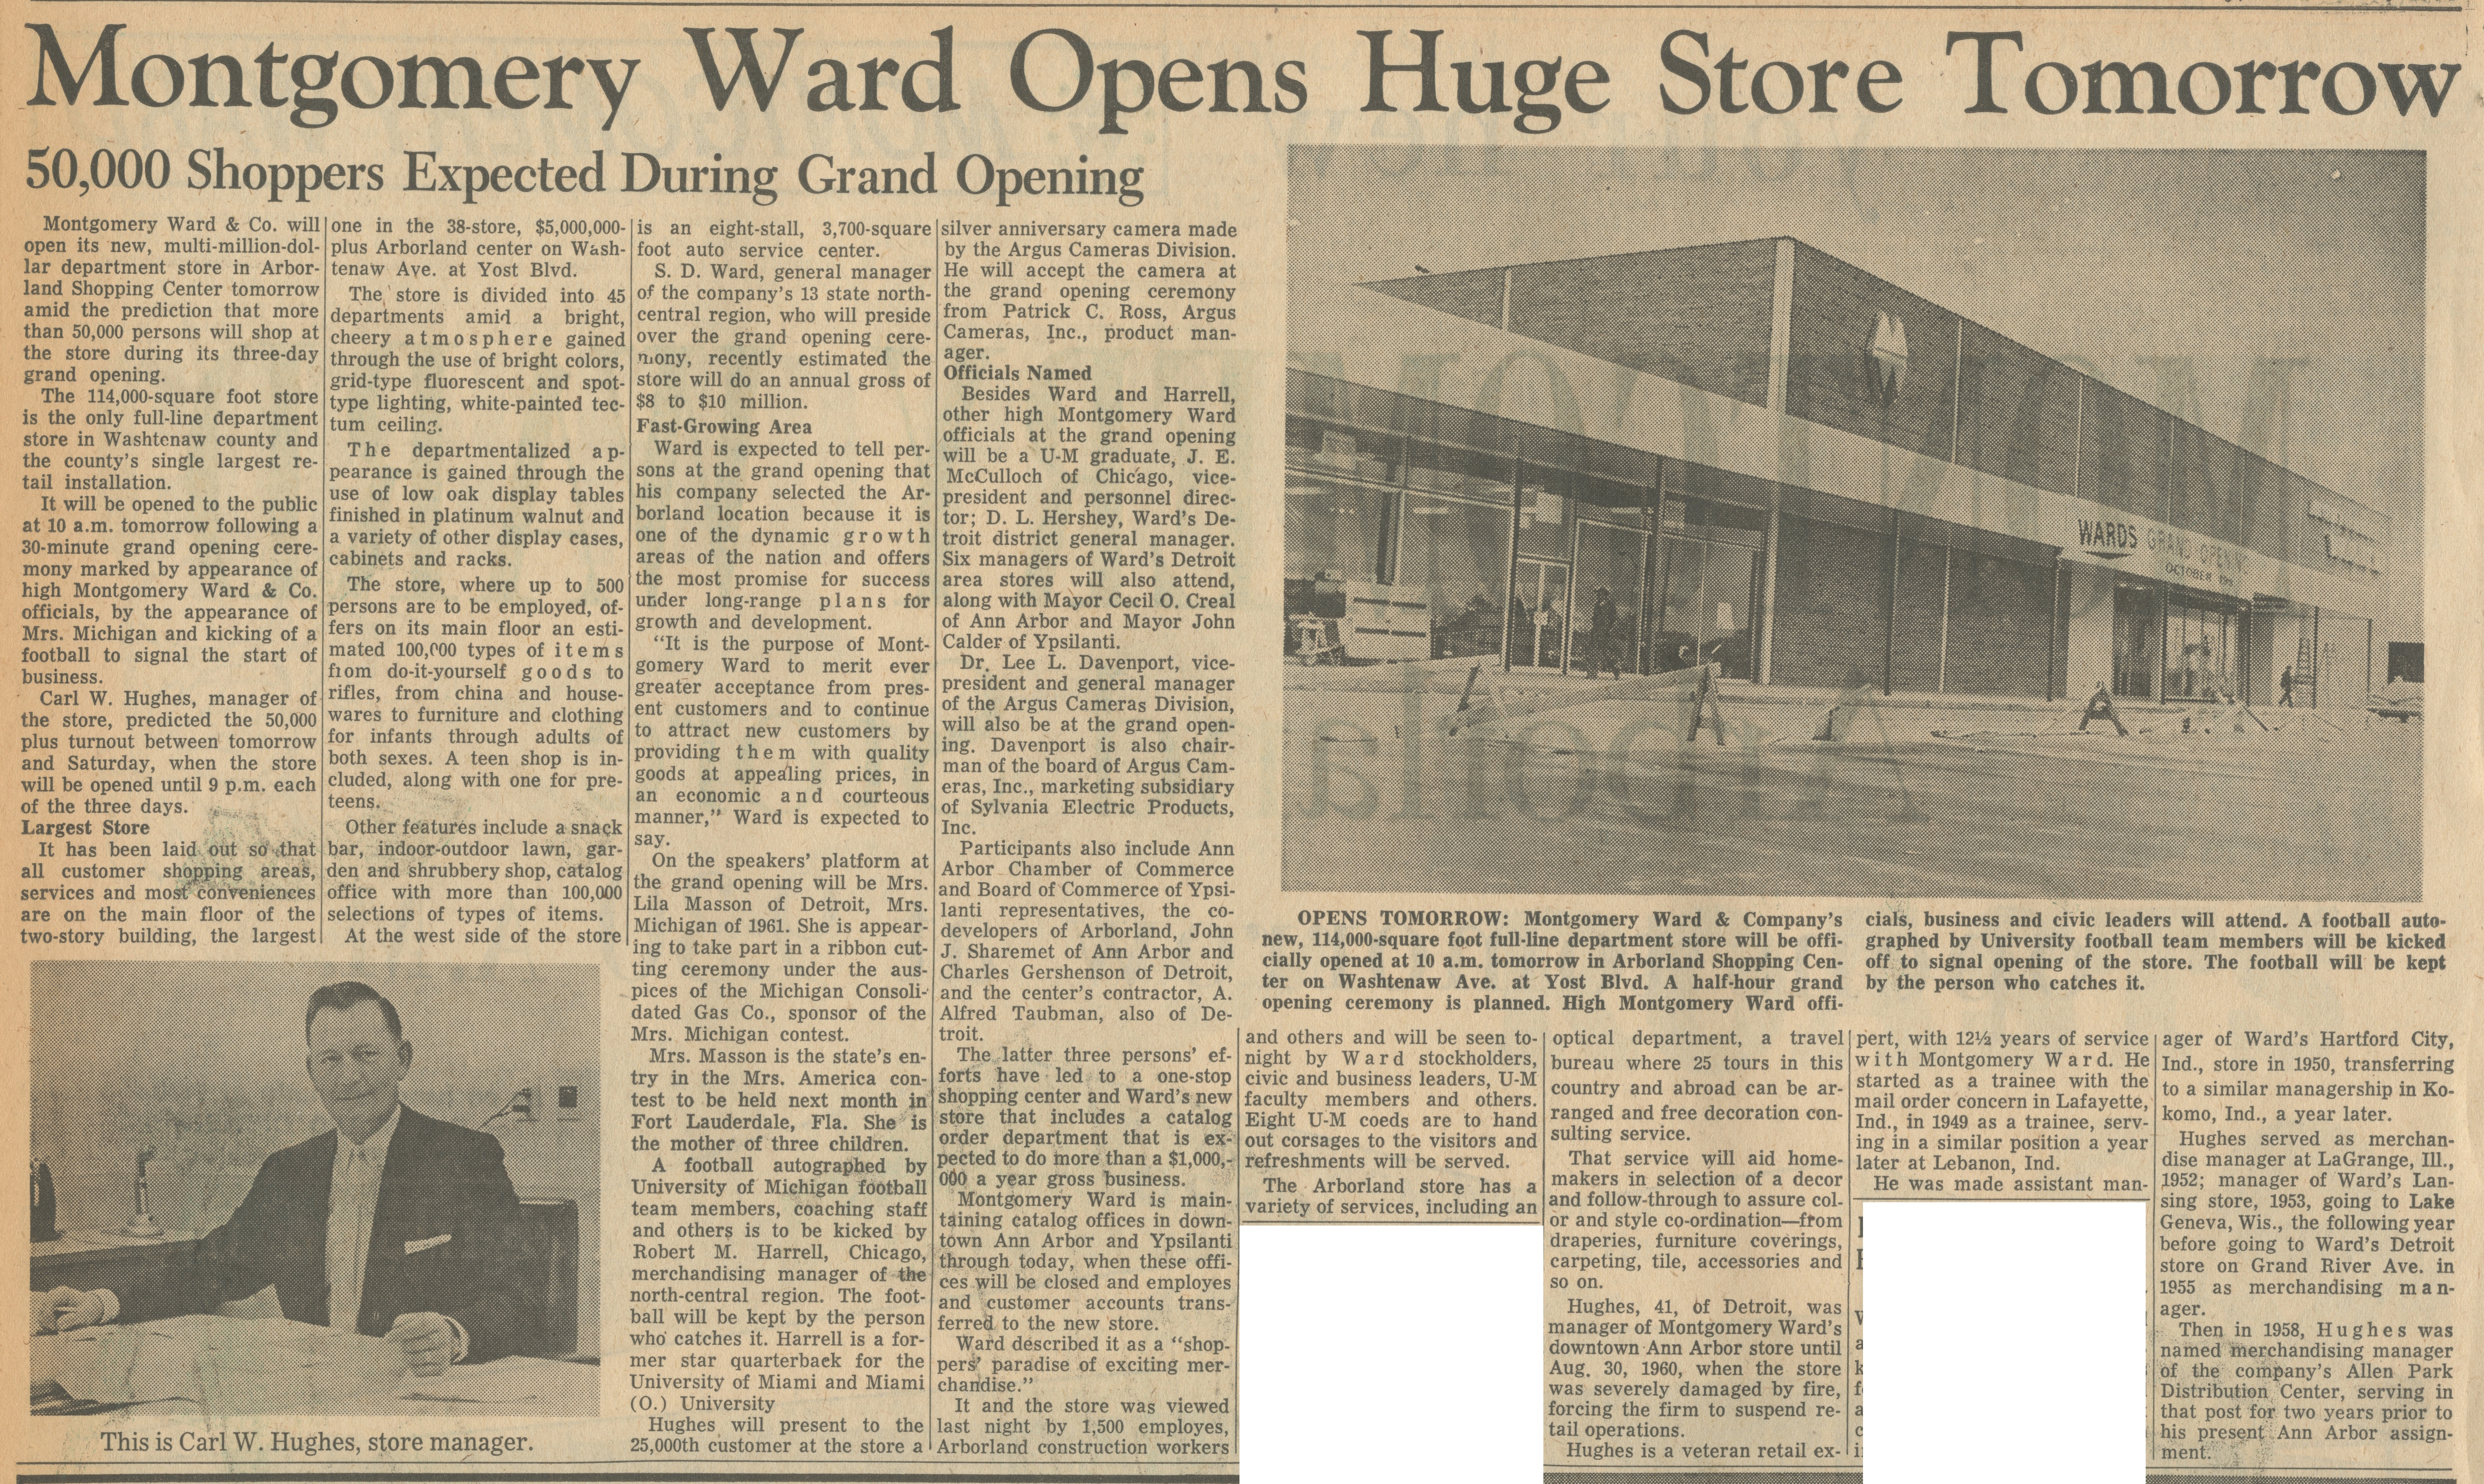 Montgomery Ward Opens Huge Store Tomorrow image